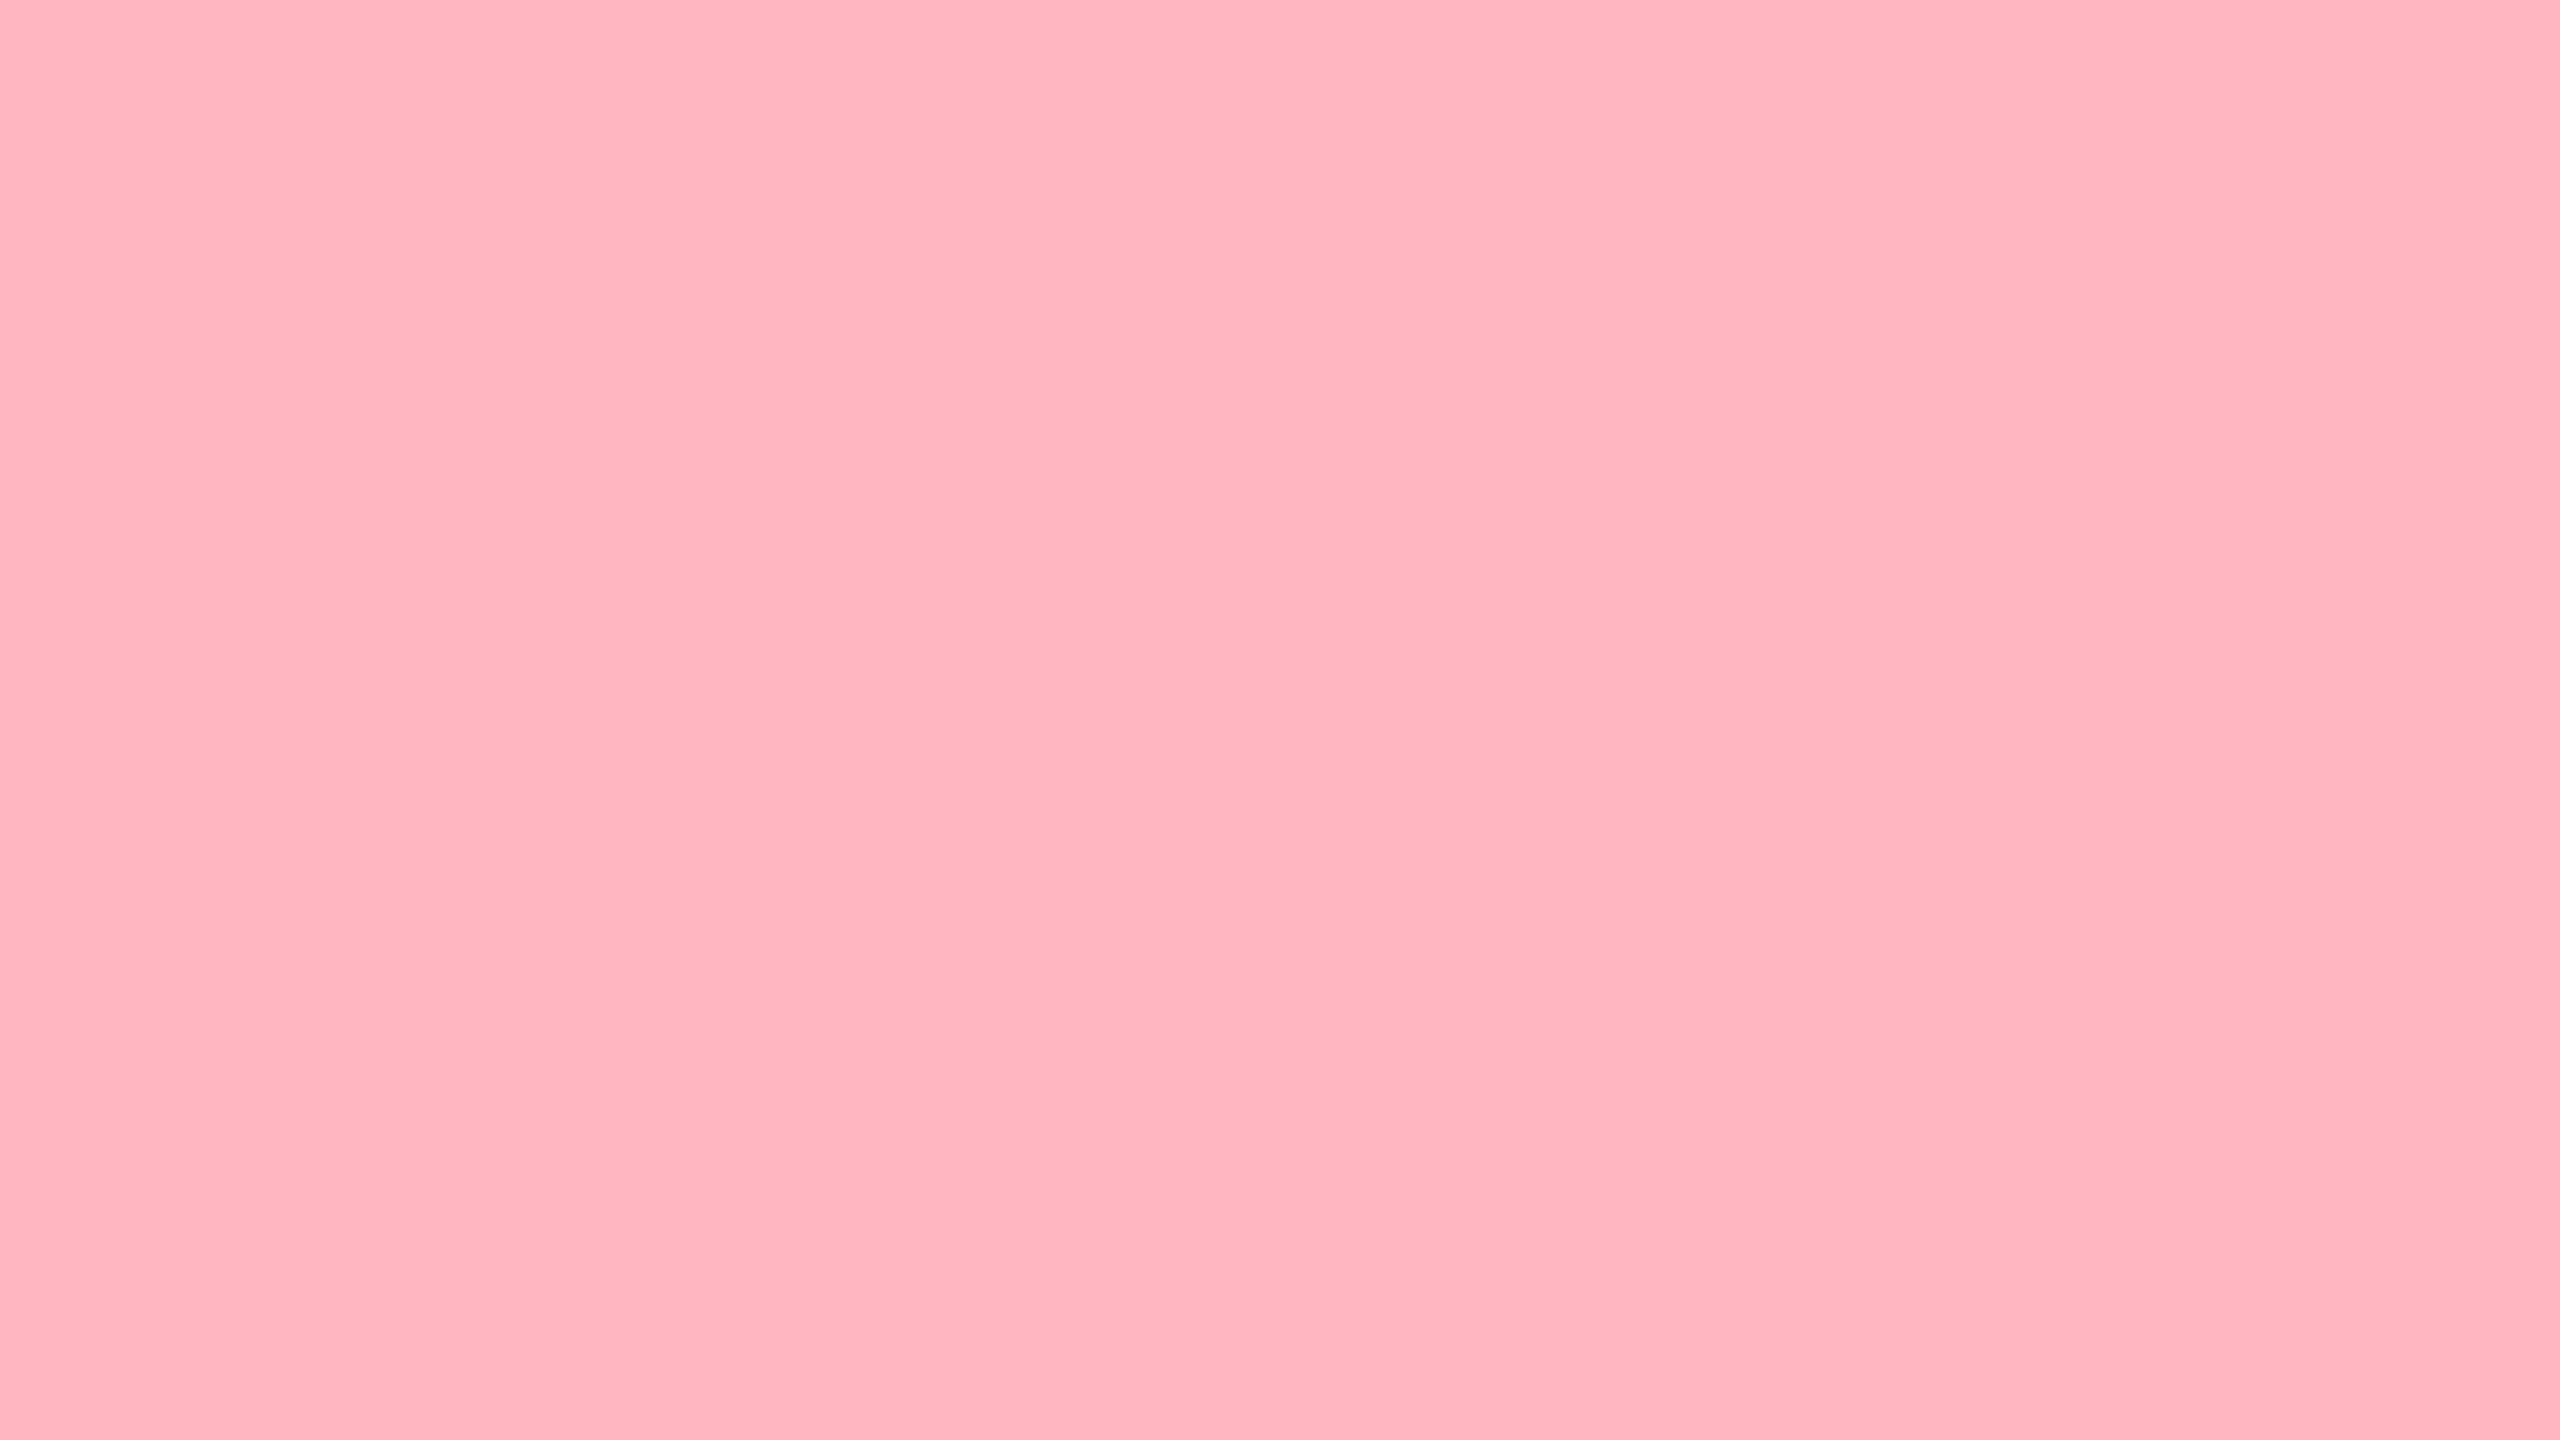 2560x1440 Light Pink Solid Color Wallpaper 973